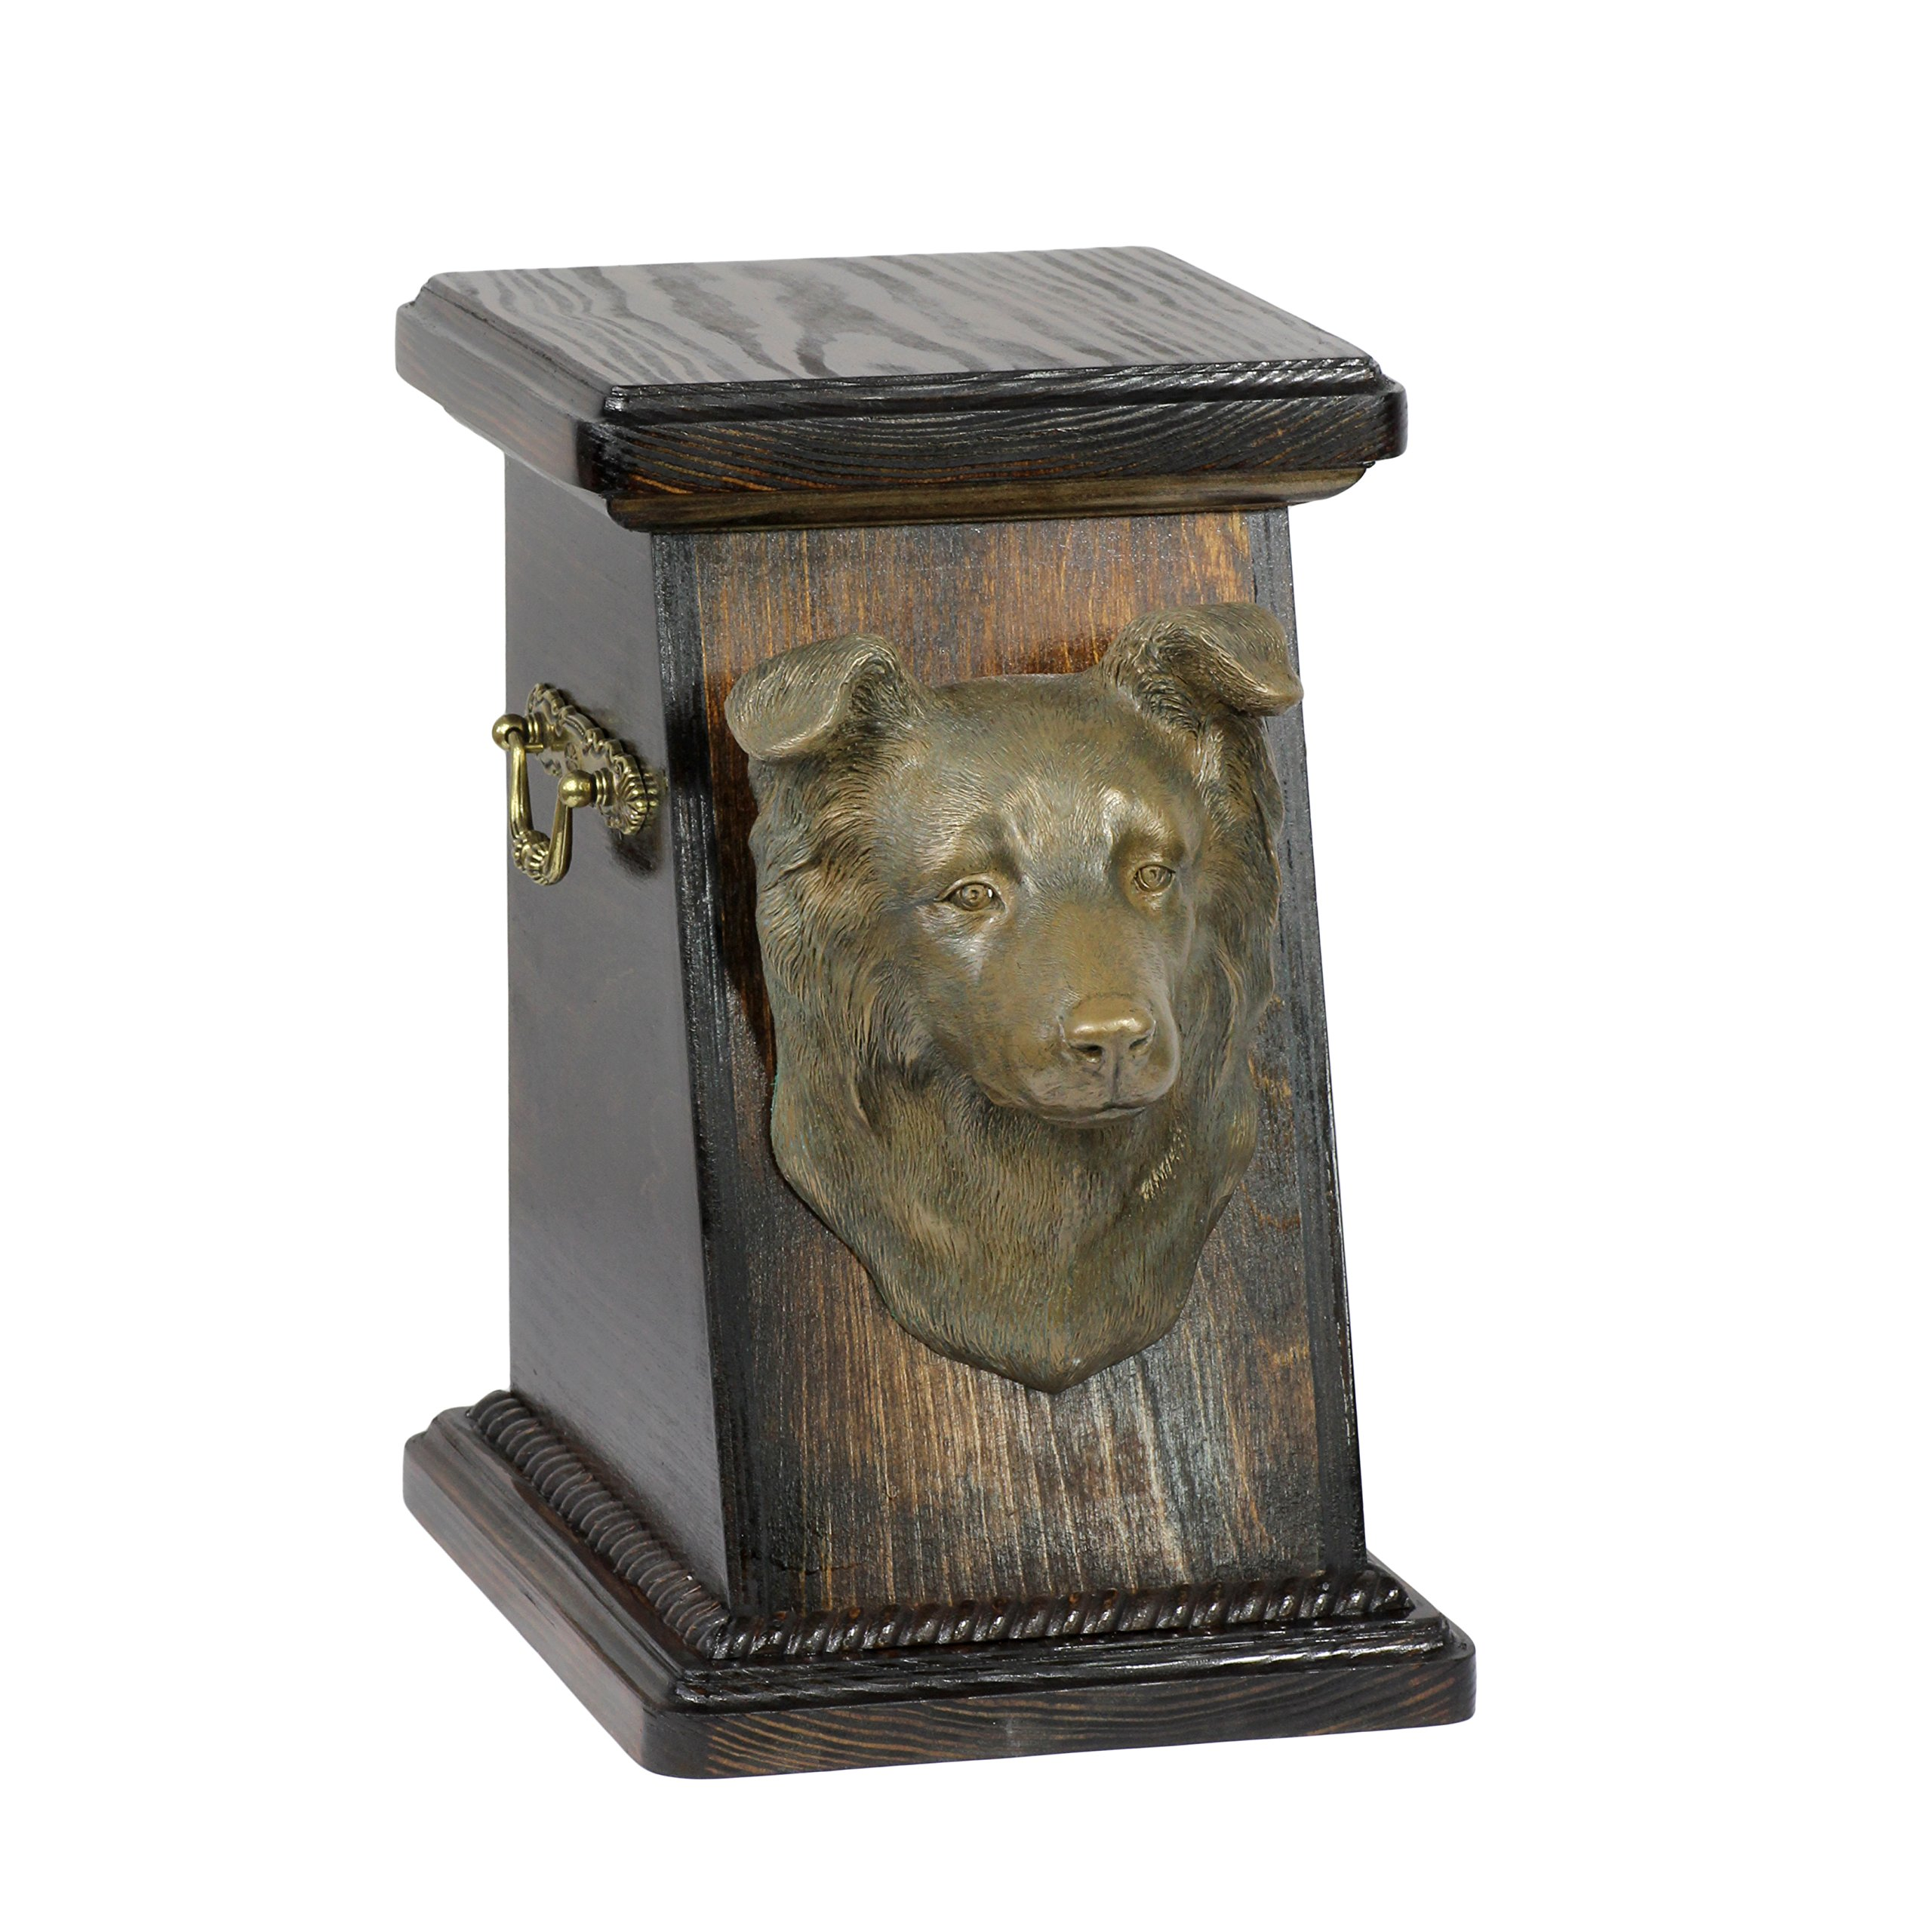 Border Collie, memorial, urn for dog's ashes, with dog statue, ArtDog